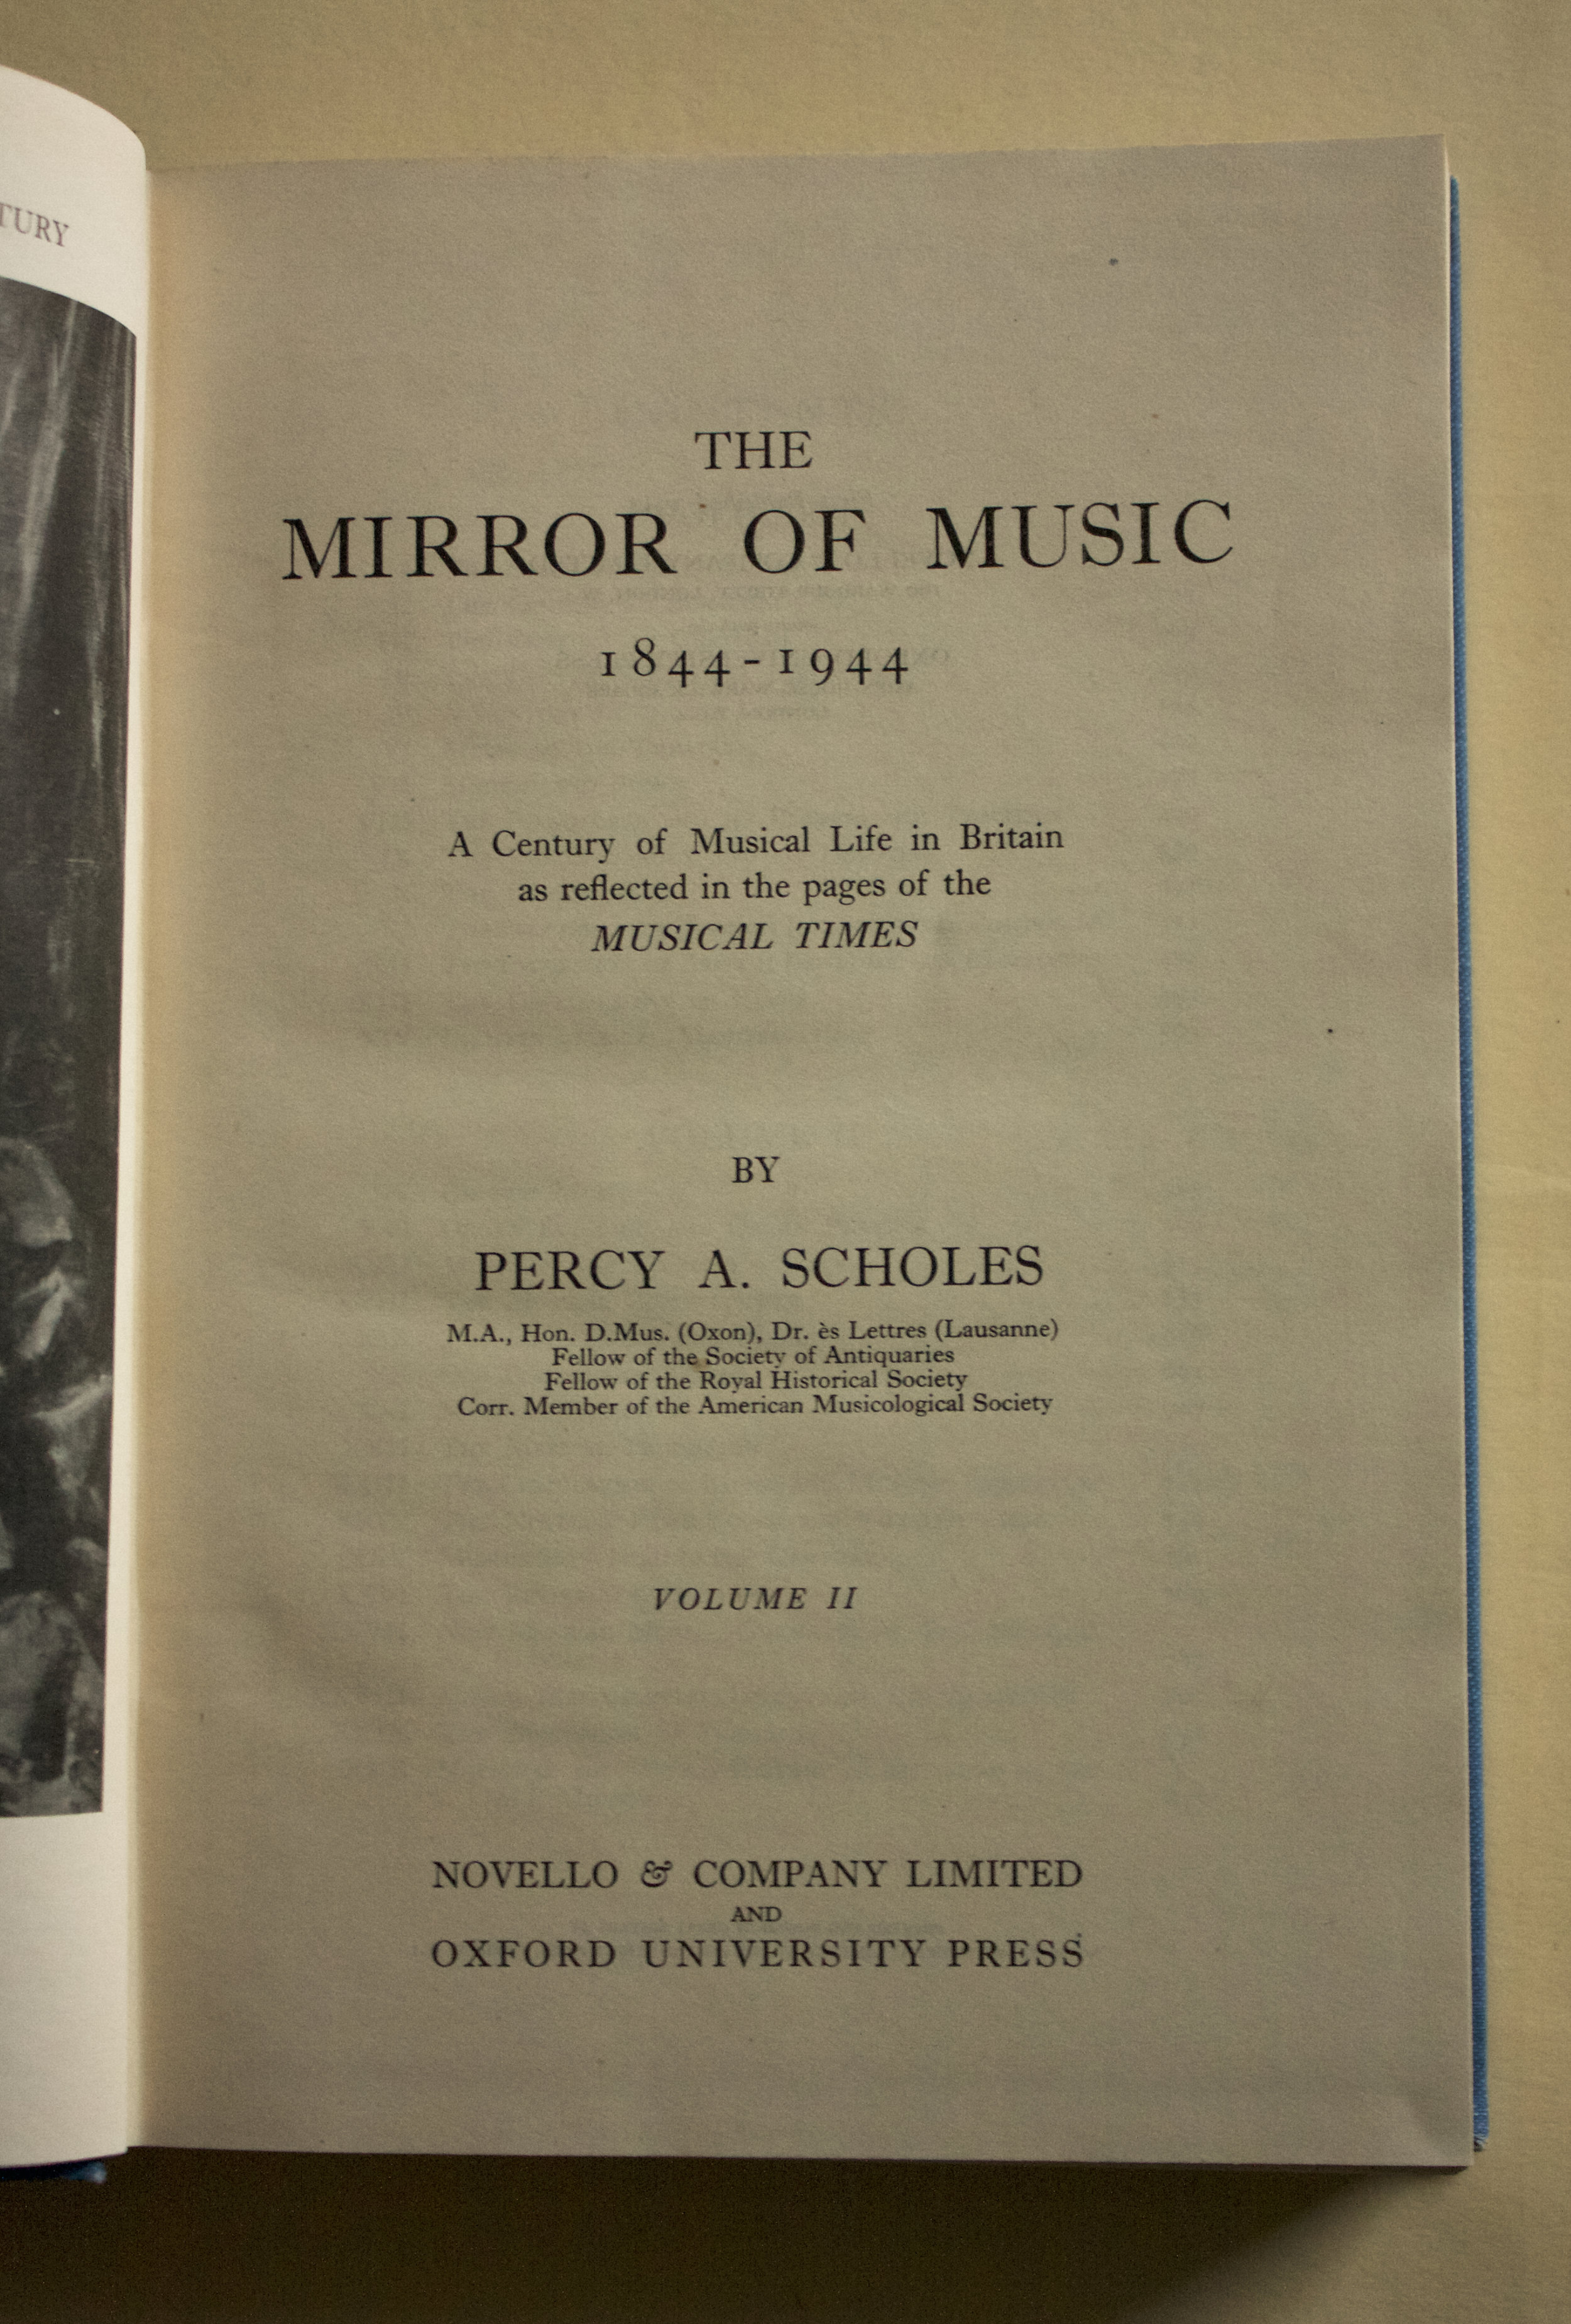 Copy of The Mirror of Music 1844-1944 in 2 volumes by Percy A. Scholes (Novello & Co. Ltd. and O.U.P., 1947)